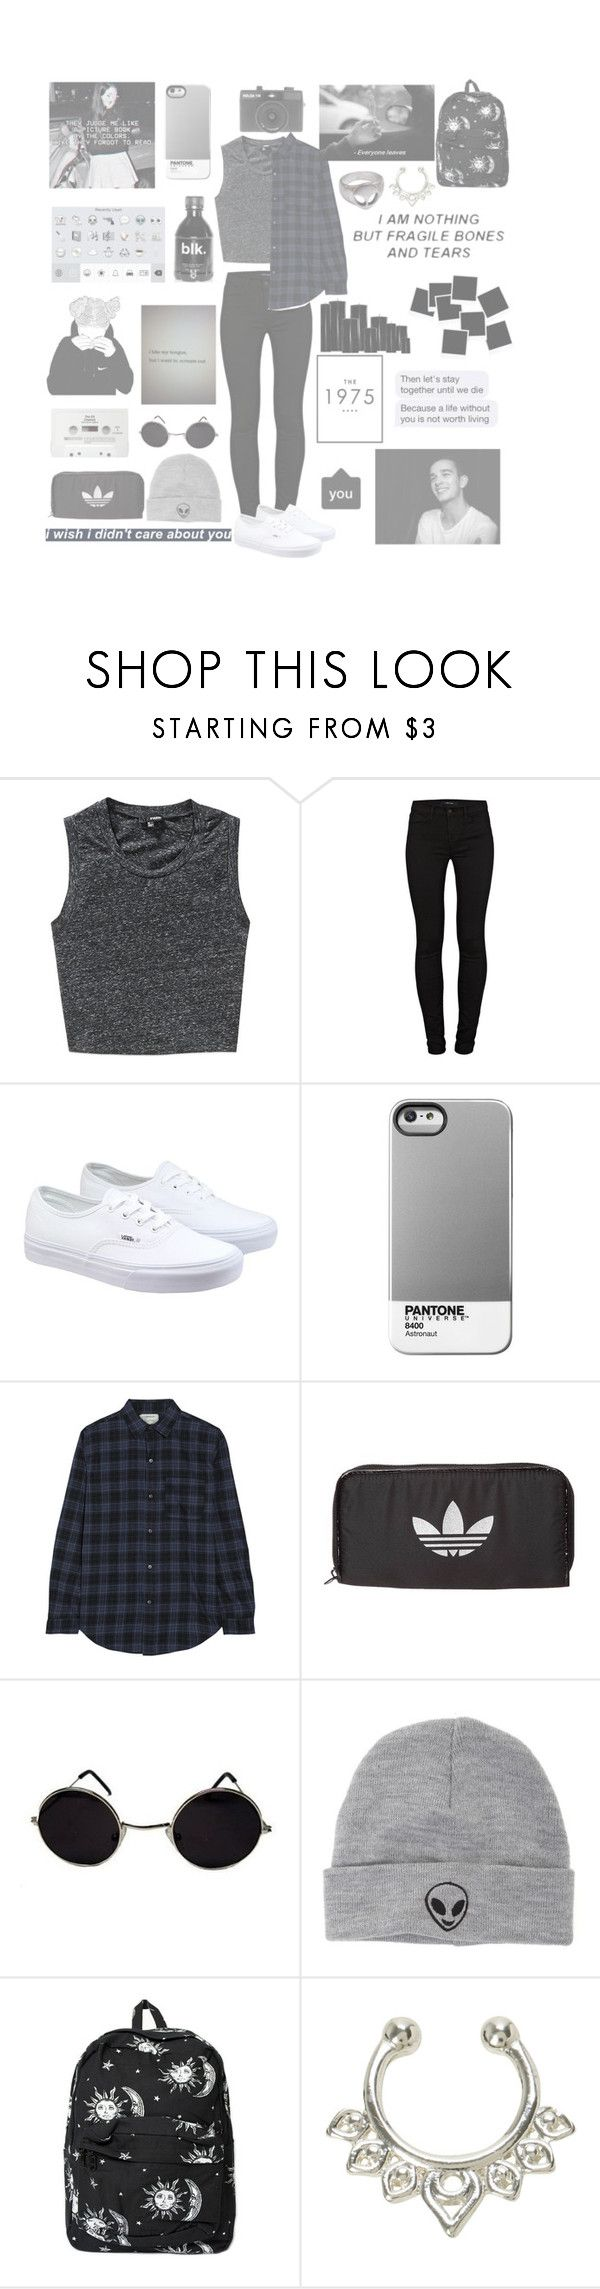 """""""'I hate you, I love you, I hate that I love you'"""" by holographic-hemmings ❤ liked on Polyvore featuring Wilfred Free, J Brand, Vans, Current/Elliott, Holga, CASSETTE, adidas Originals, With Love From CA, Motel and women's clothing"""